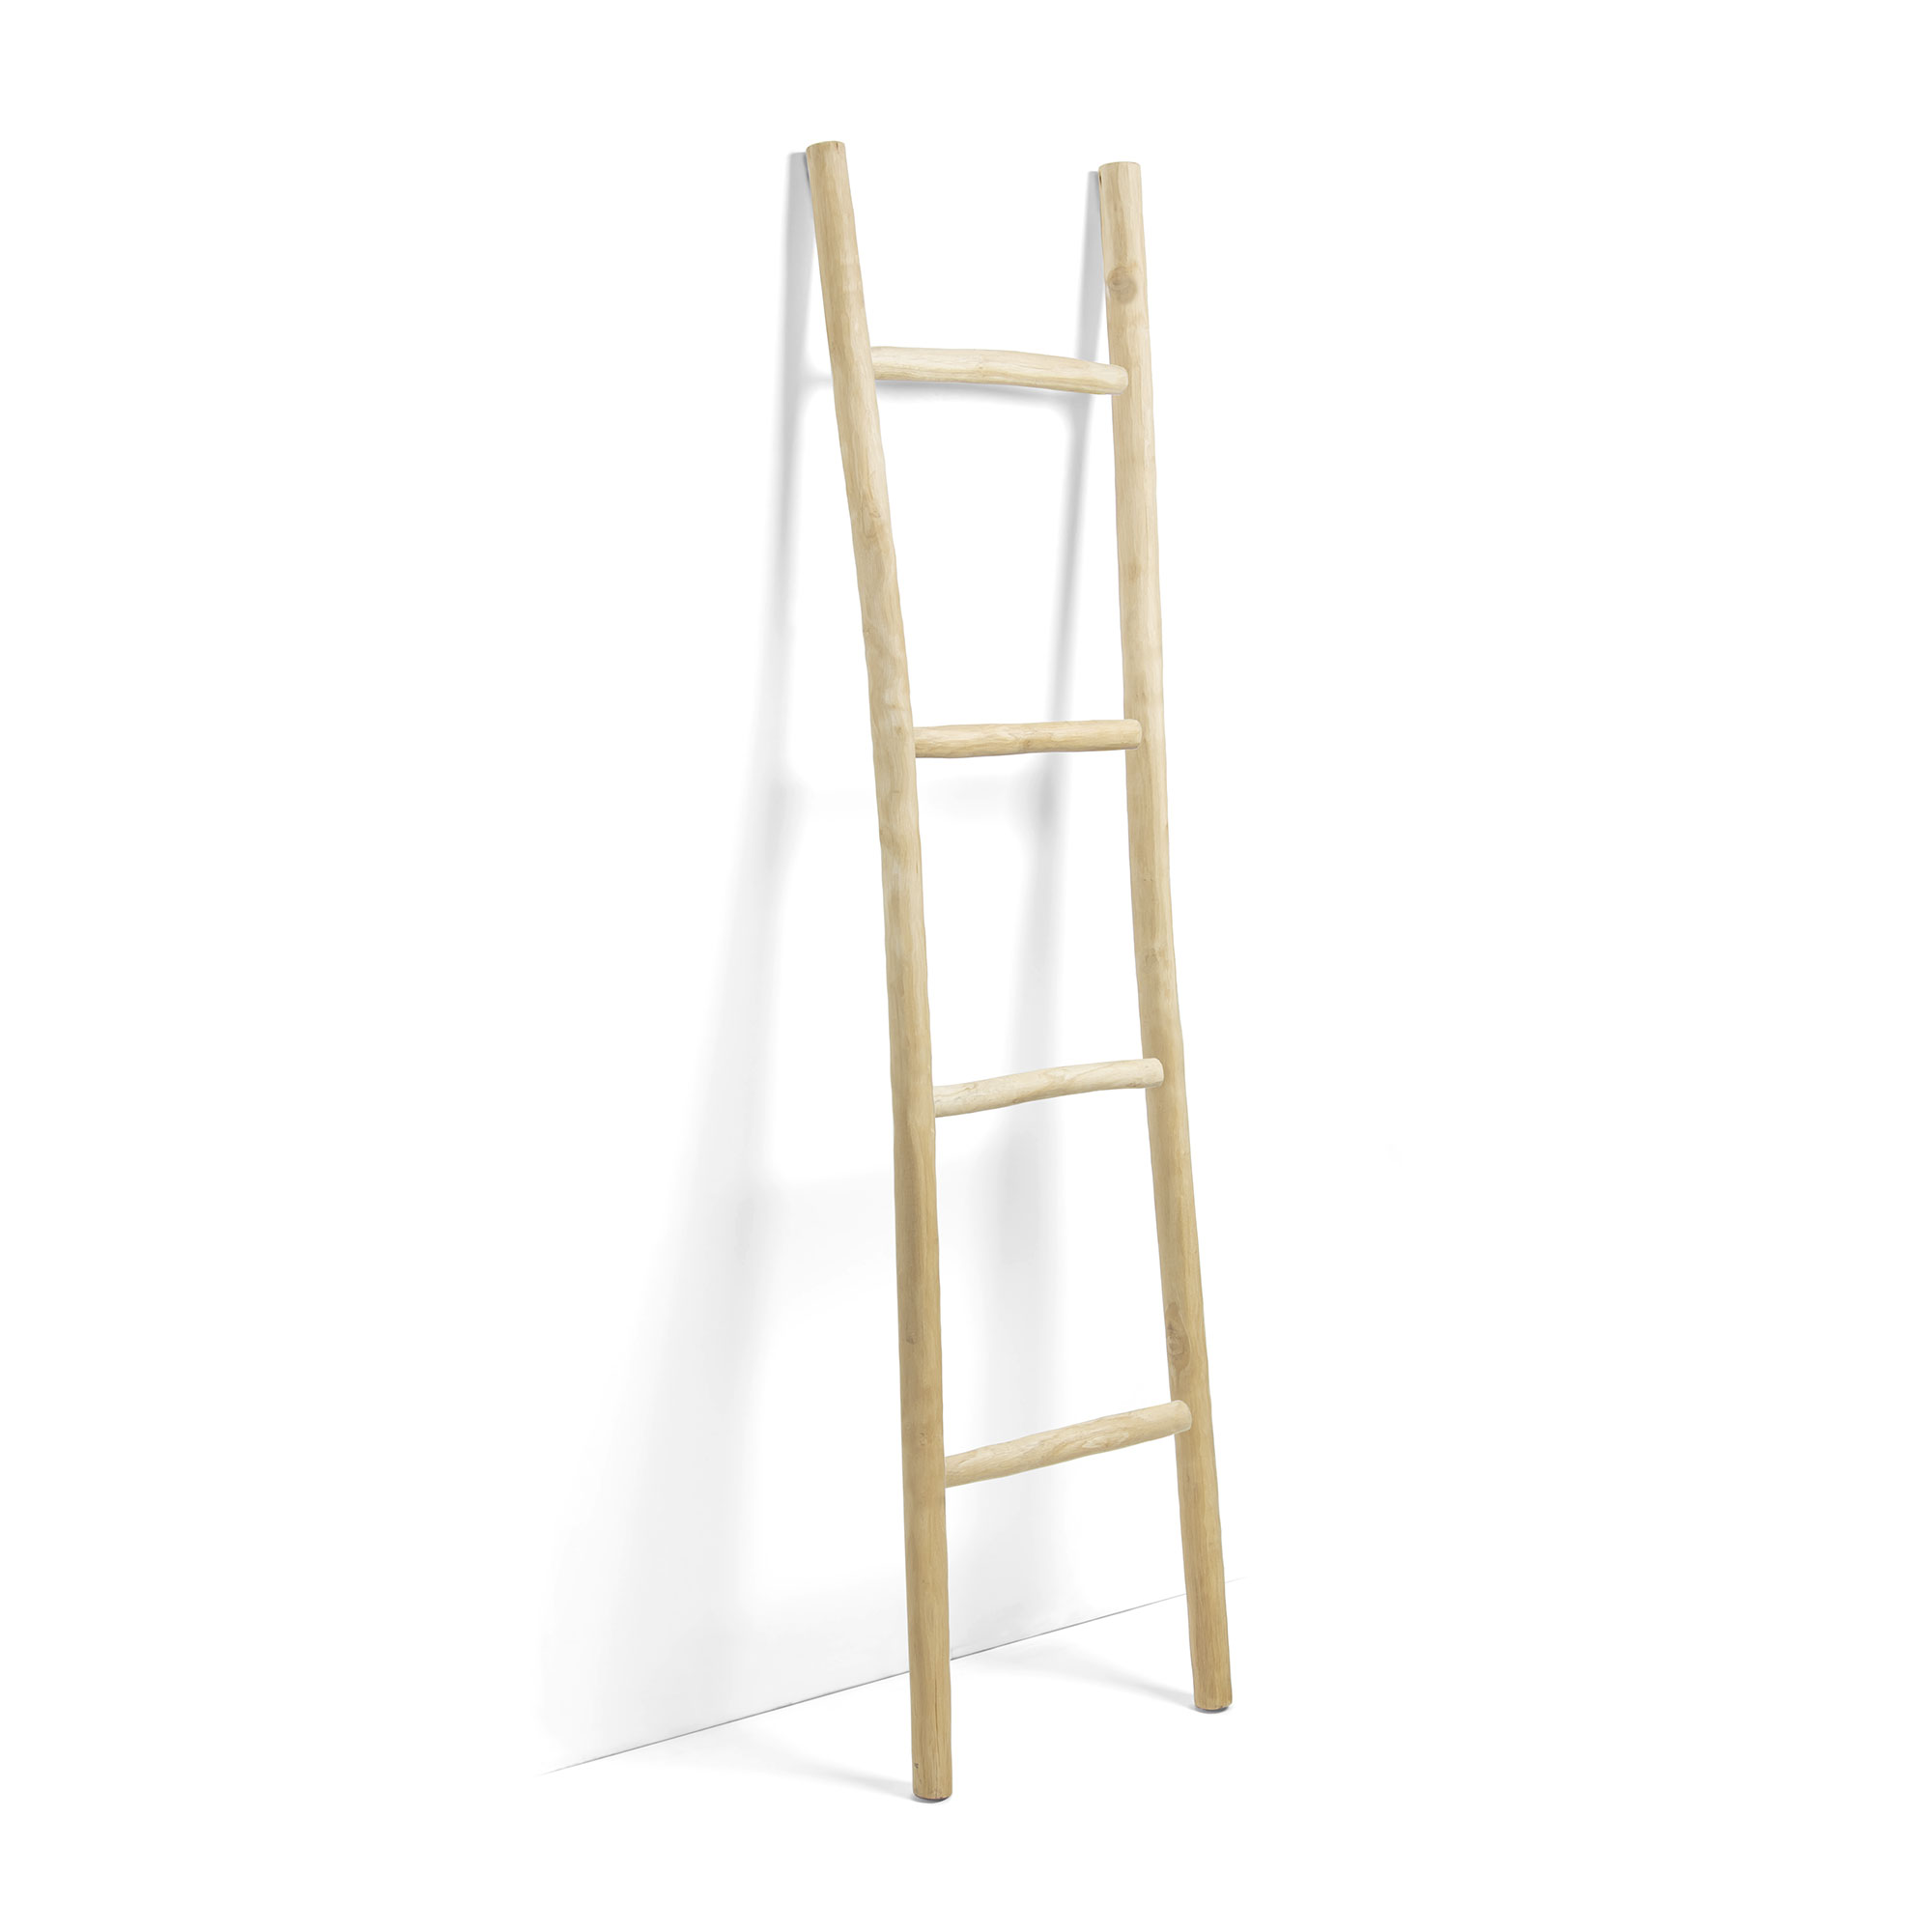 Kave Home Decoratie ladder 'Marge' Teak 190cm, kleur Naturel